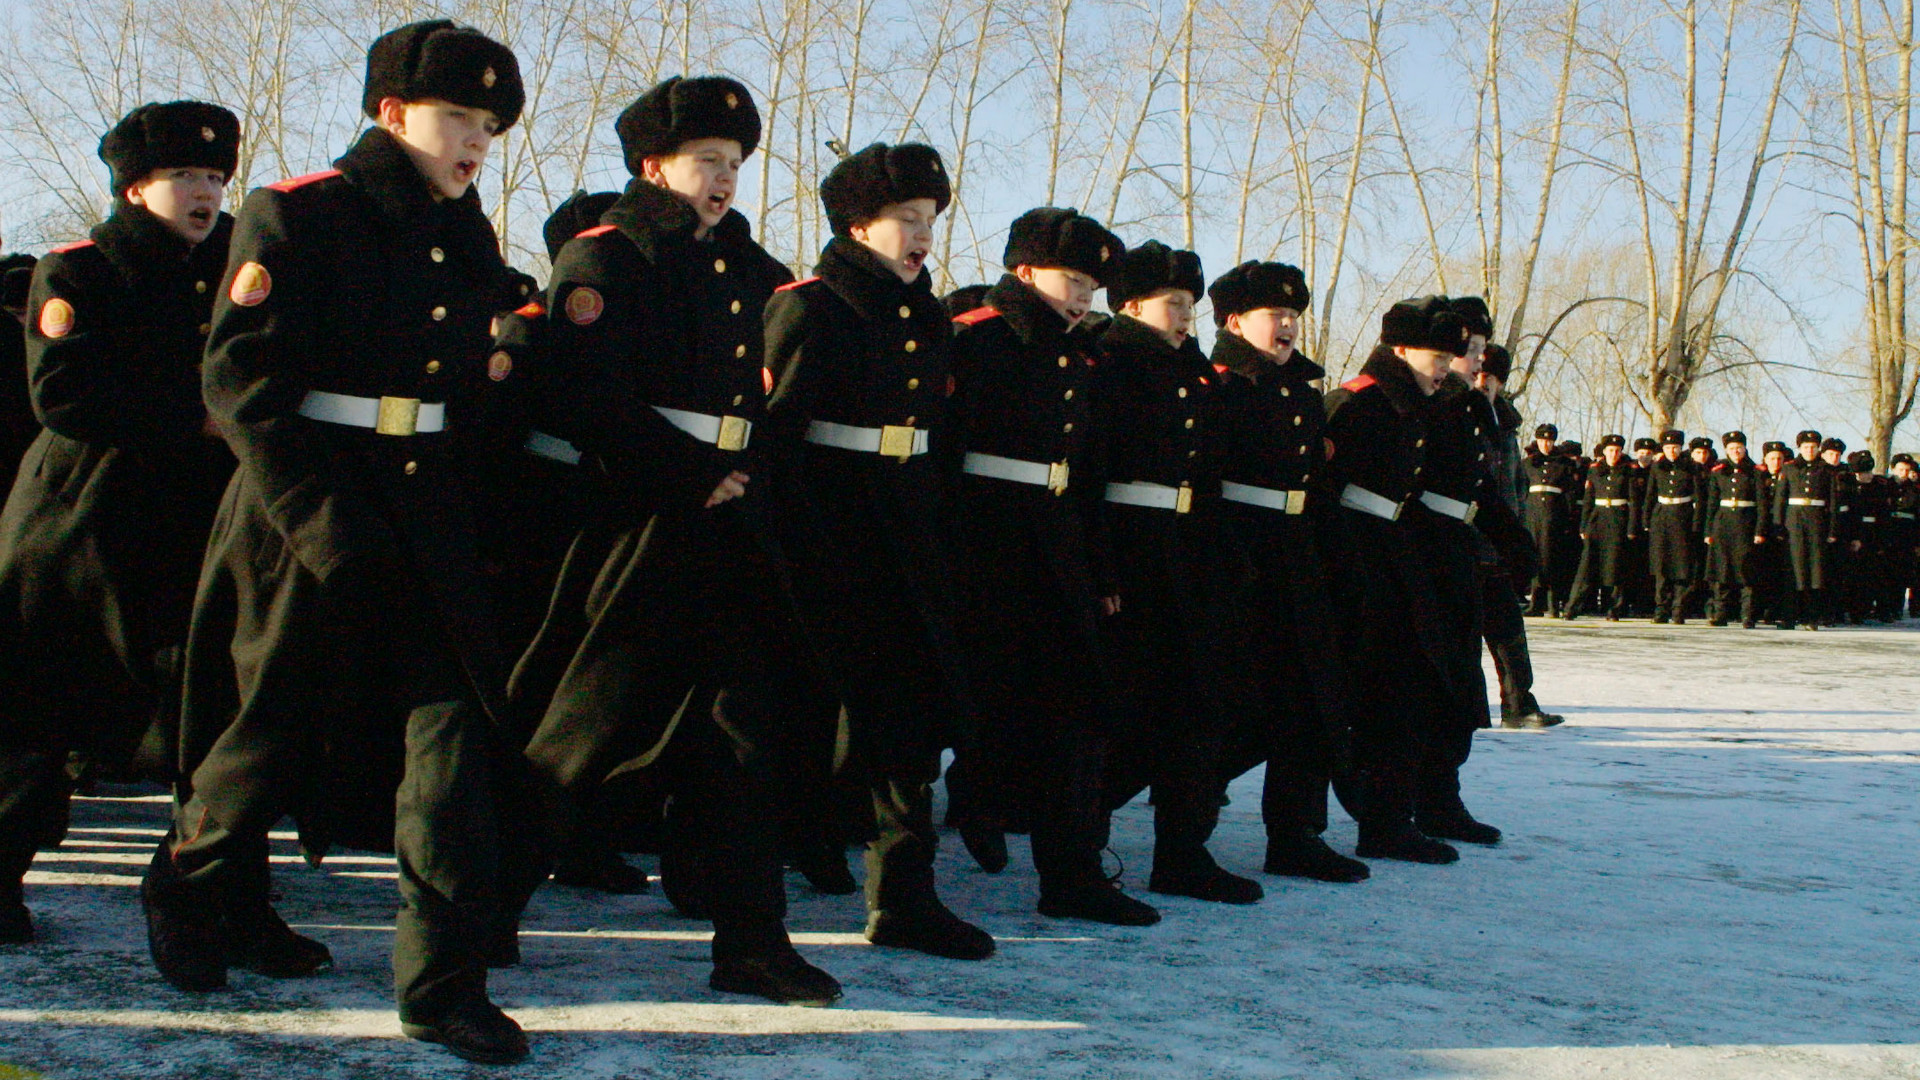 A group of troops in Siberia.